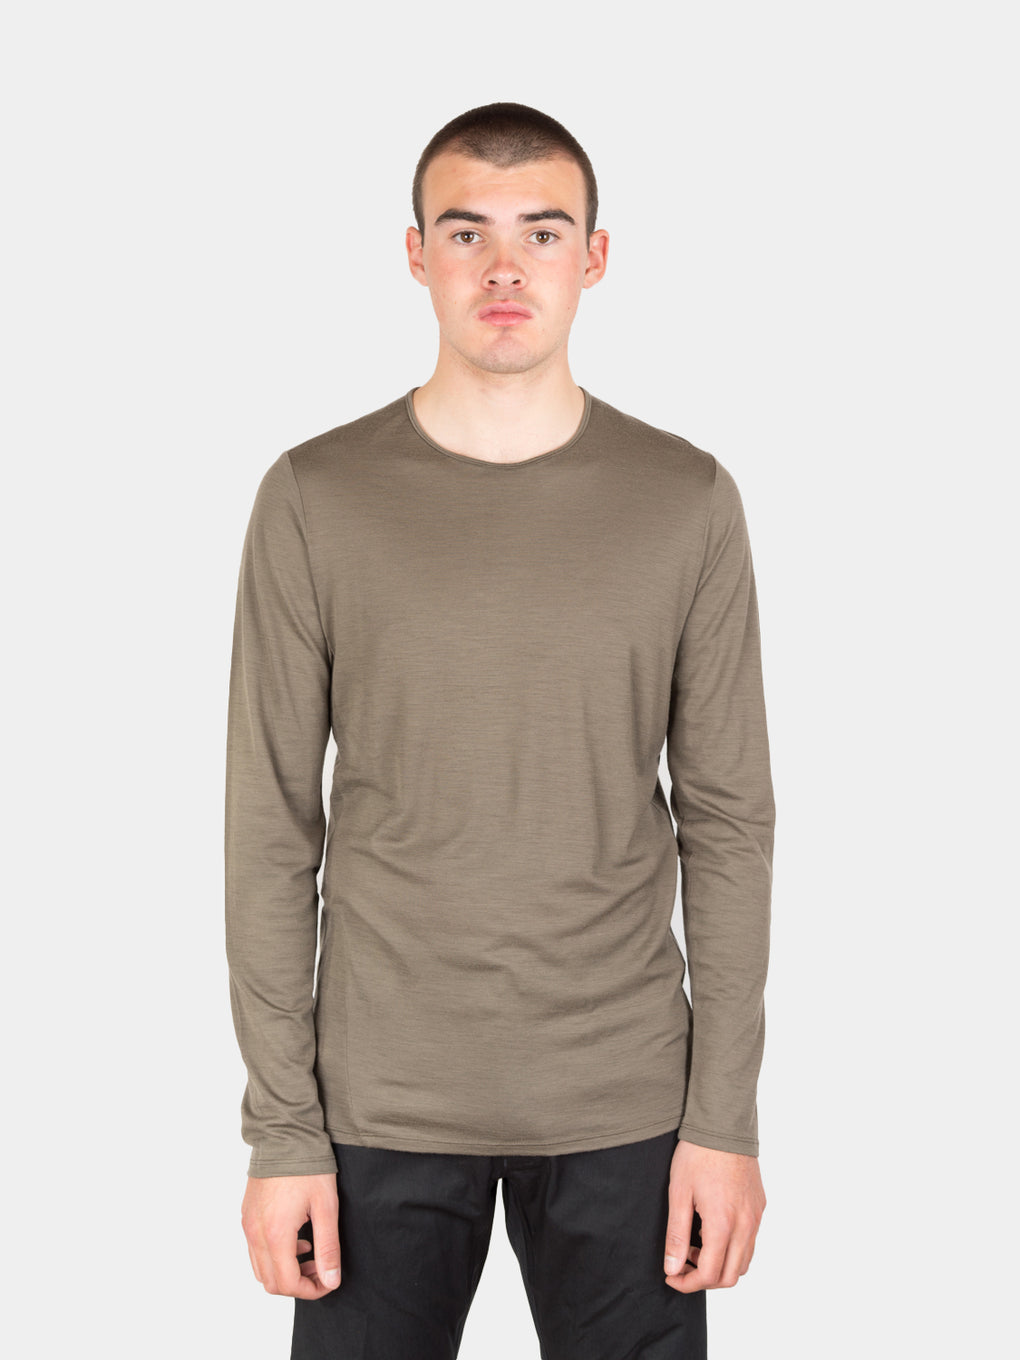 frame shirt ls, mortar, veilance, on model front view